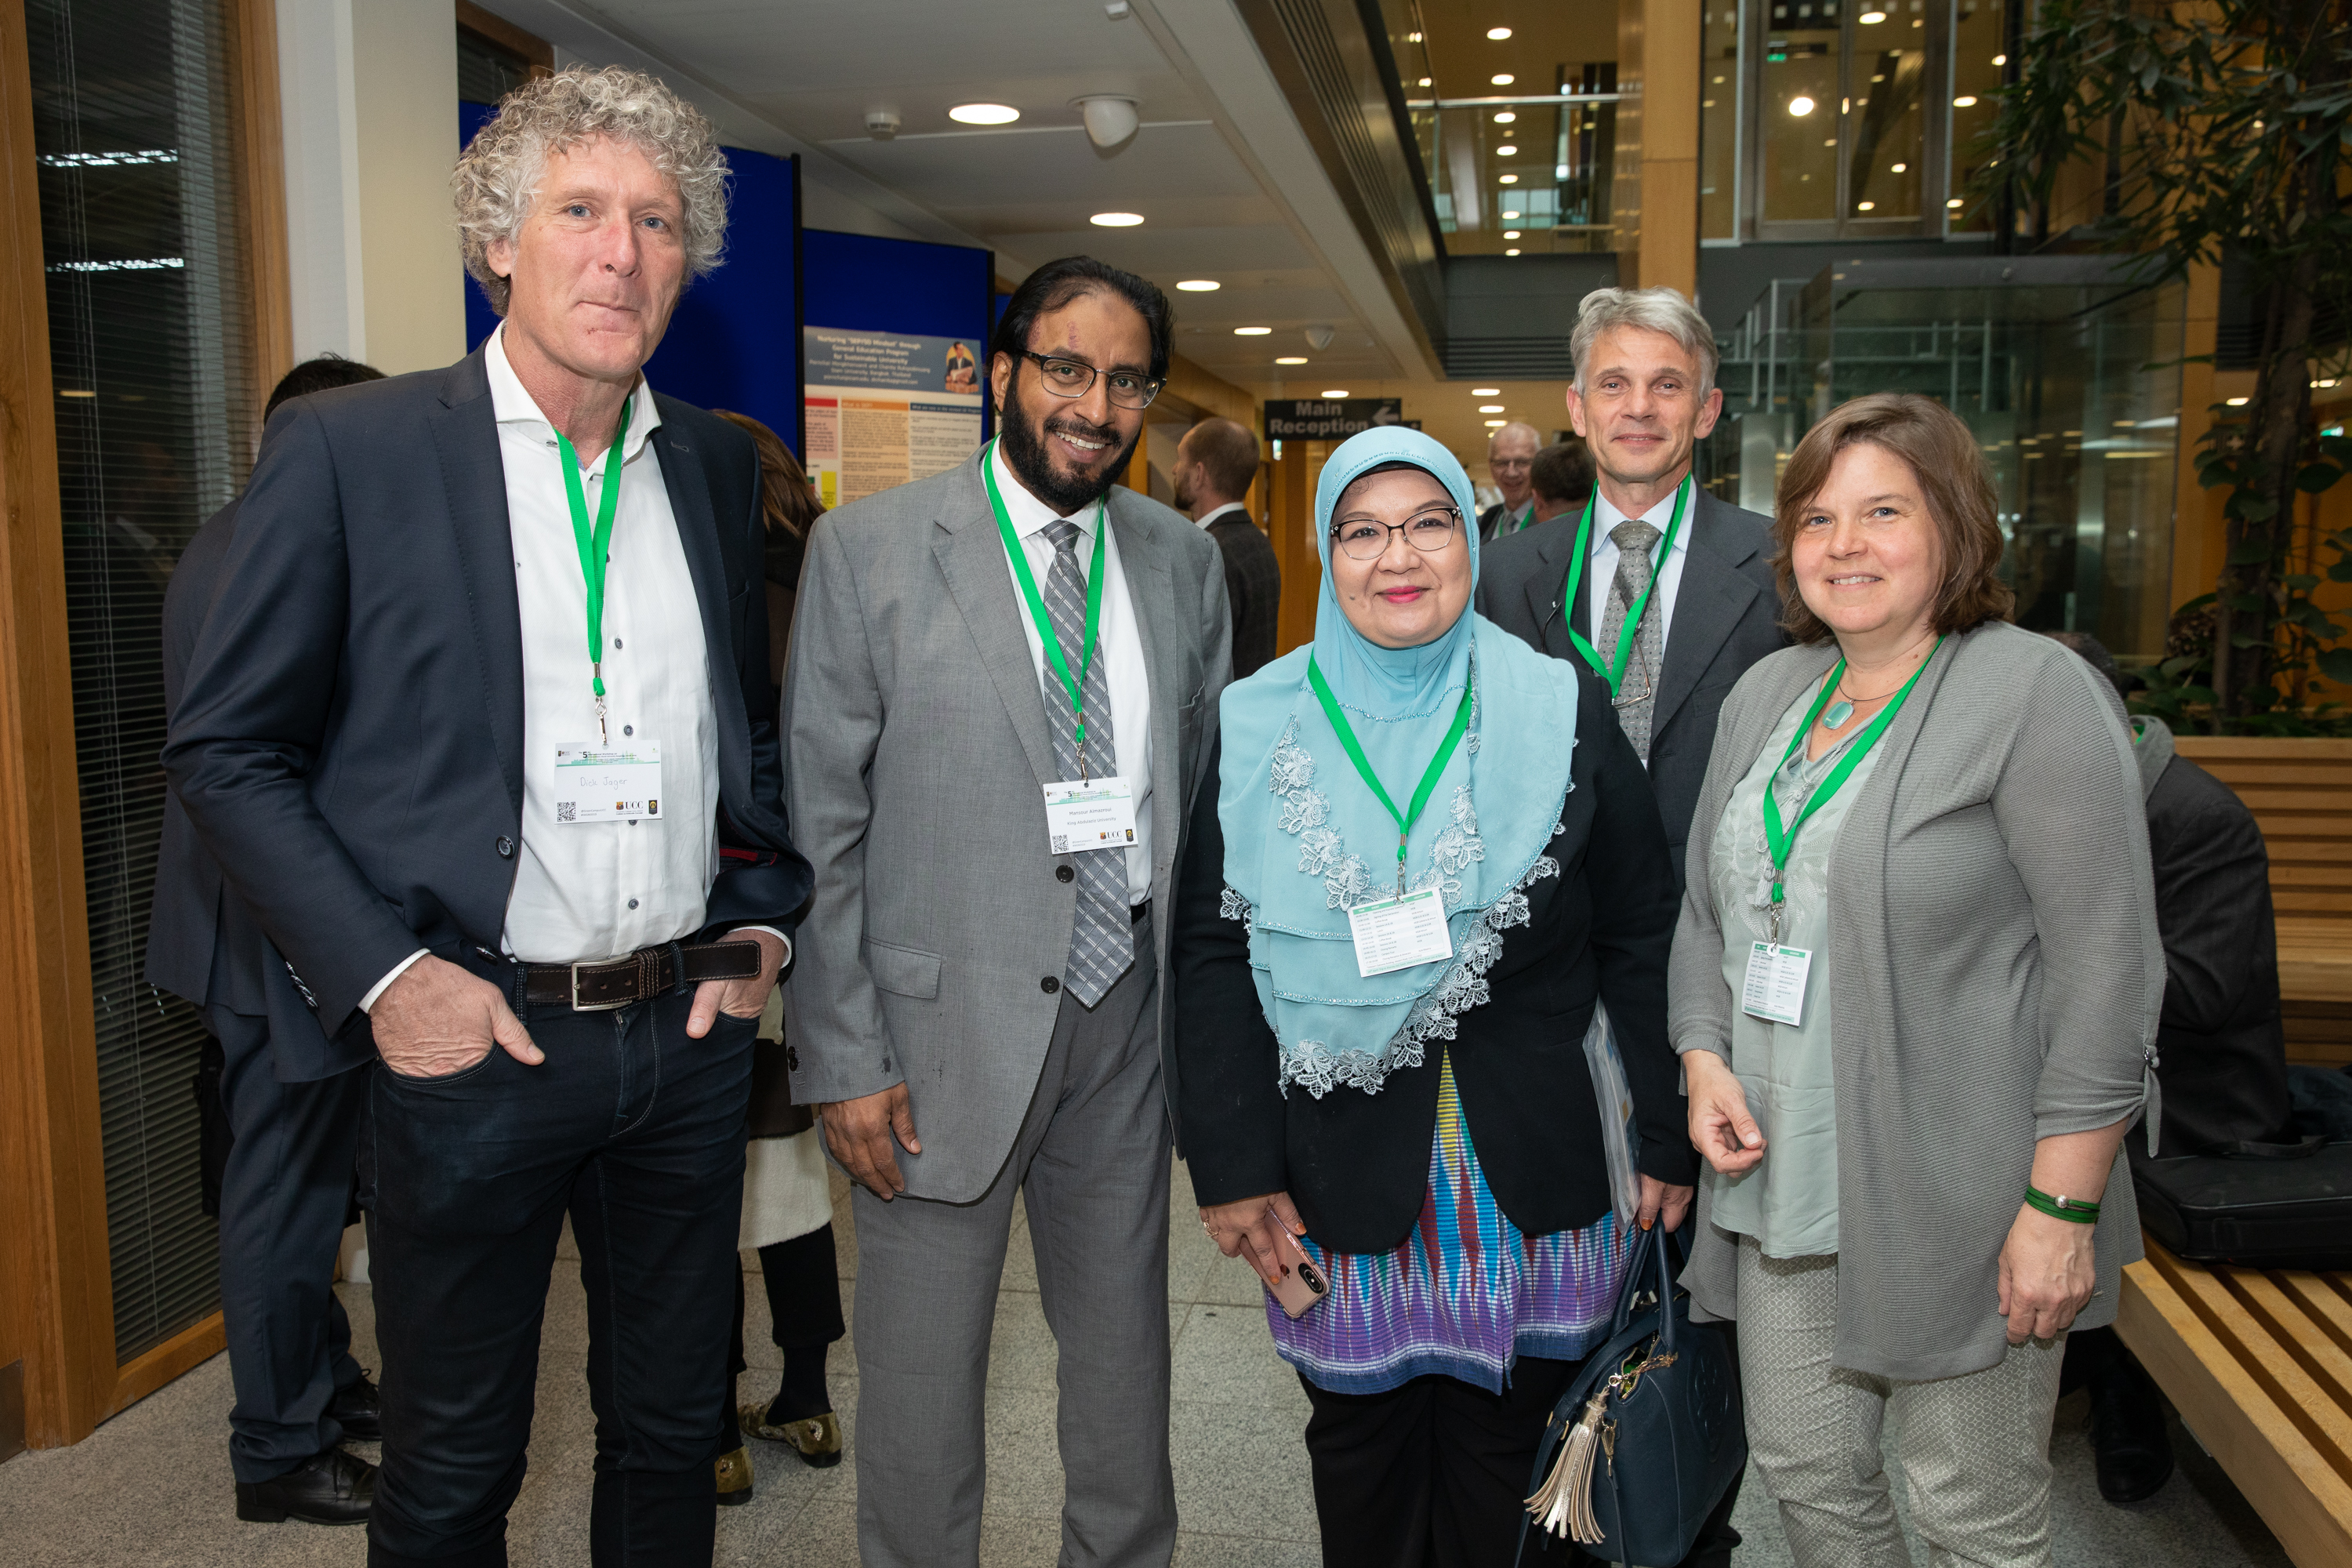 FREE IMAGE- NO REPRO FEE. Photographed on 15th April in UCC,  university representatives from 34 countries at the 5th International Workshop on GreenMetrics. This conference was co-hosted by UCC and Universitas Indonesia (UI). UI GreenMetrics ranks 3rd level institutions based on their performance in areas such as waste management, green transport, energy reduction, water management and education in sustainability. This year's theme is 'Sustainable Universities in a Changing World – challenges, lessons and opportunities.  Photographed were Dick Jager, Mansour Almazroui, Riri Fitri Sari, Joris Fortuin and Erna Maters.  Photo By Tomas Tyner, UCC.